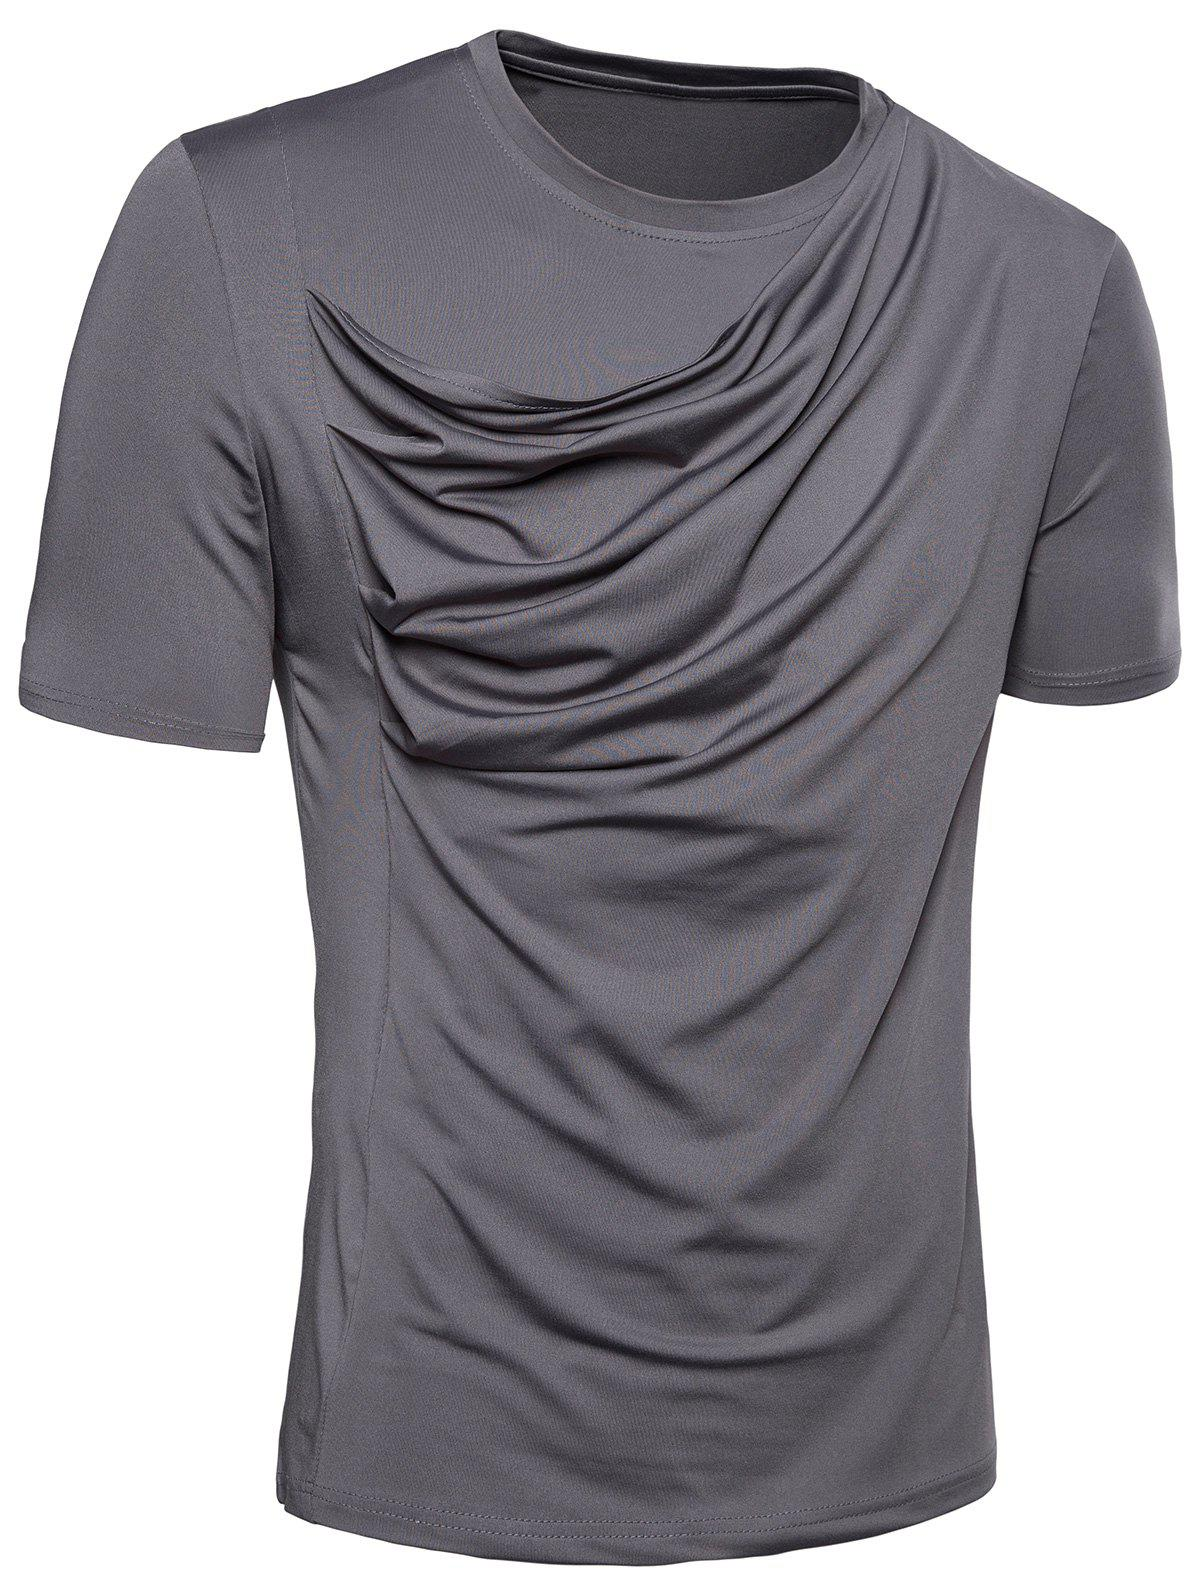 T-Shirt en Stretch Design Plissé - Gris M